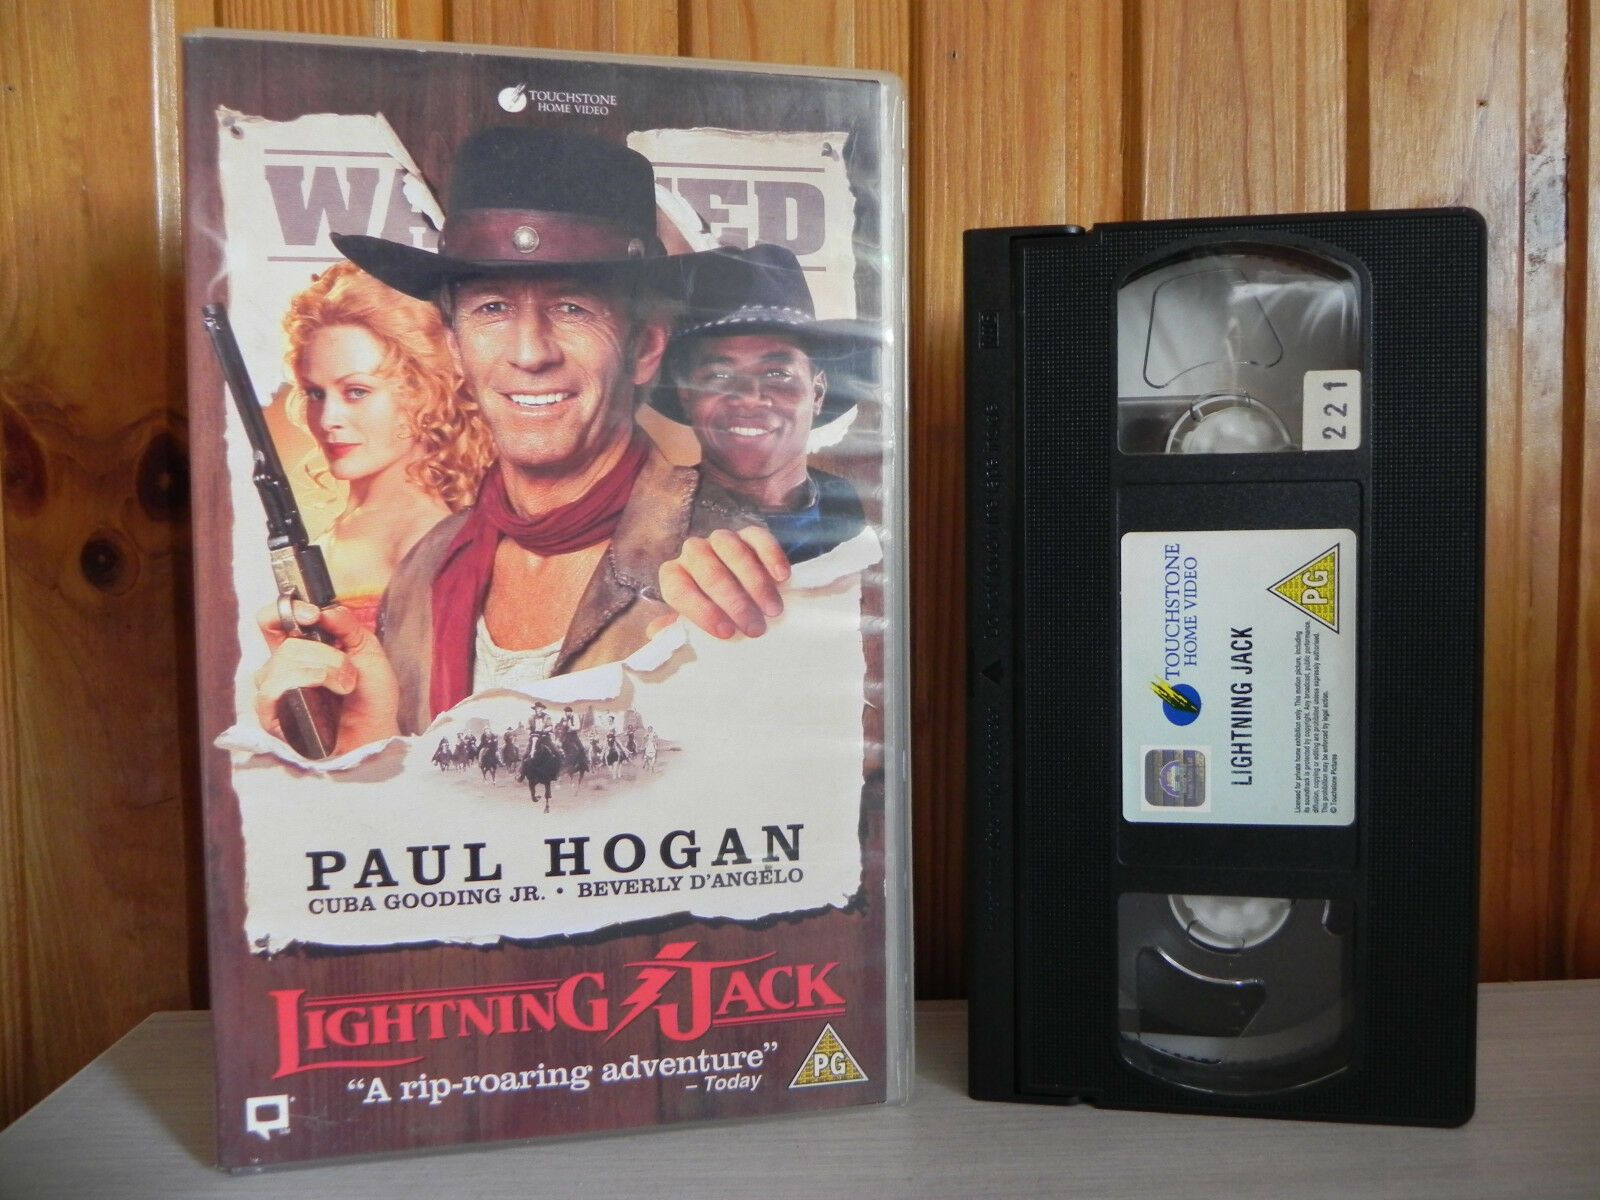 Lightening Jack: Paul Hogan / Cuba Gooding JR - Large Box - Western - Pal VHS